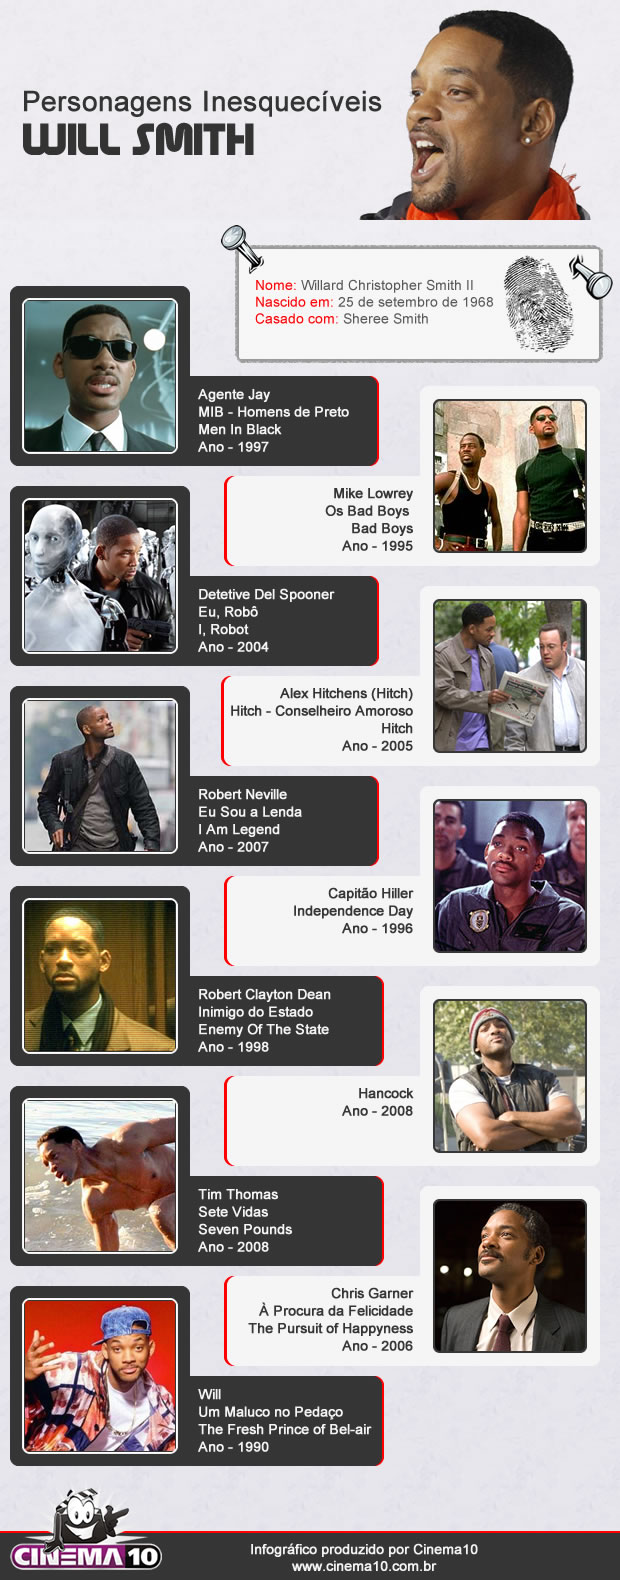 Personagens inesquecíveis de Will Smith www.pipocacafecinema.wordpress.com